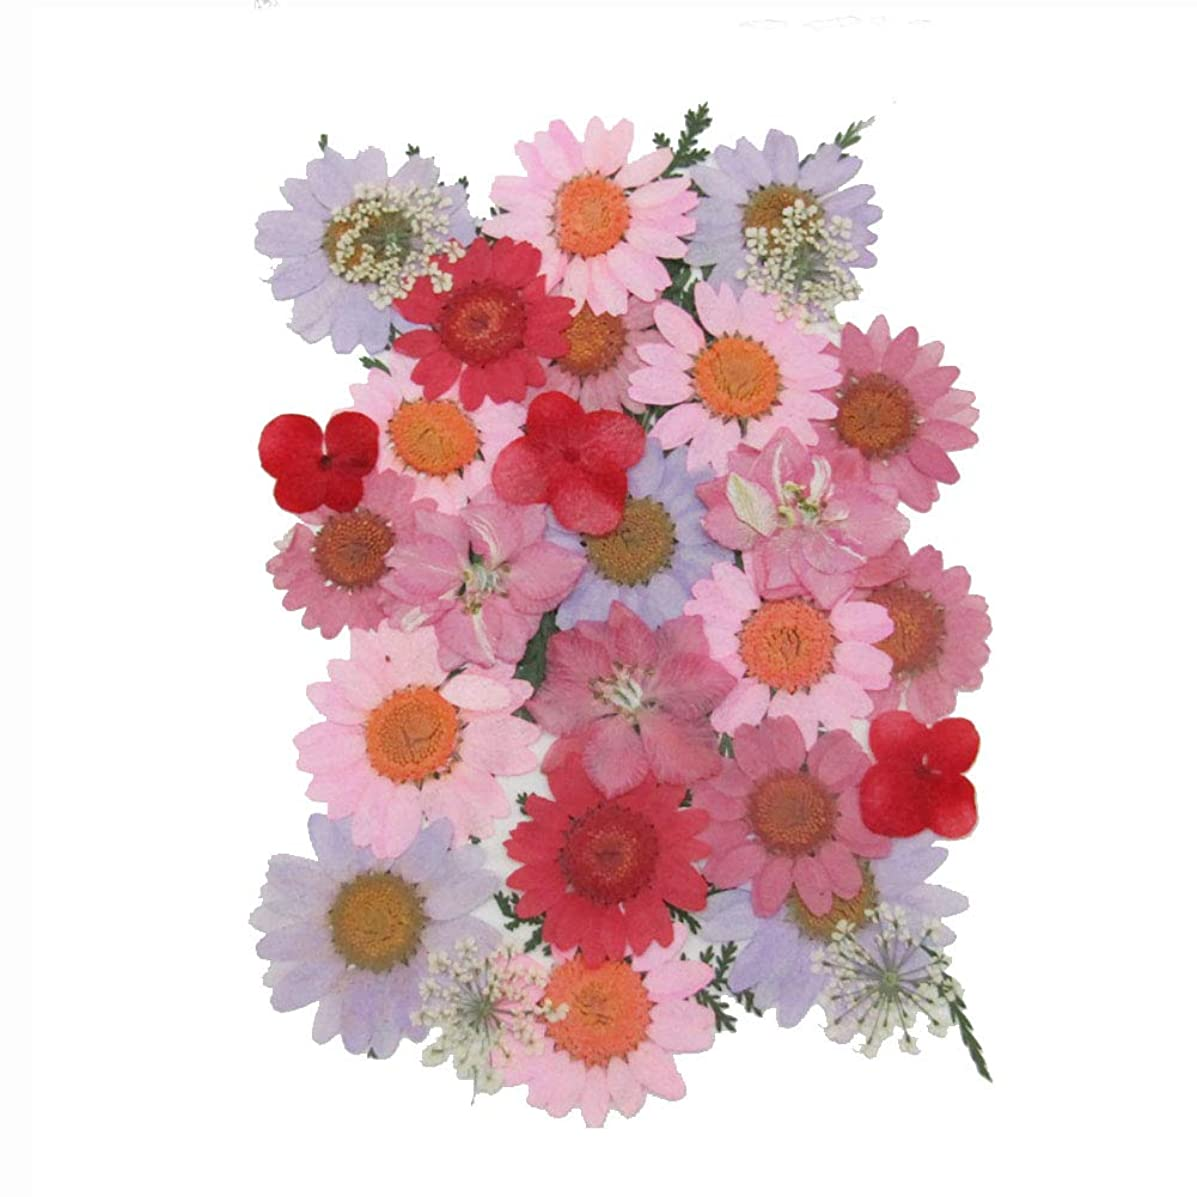 Real Mixed Multiple Dried Pressed Flowers Natural Dried Flowers for Art Craft DIY Resin